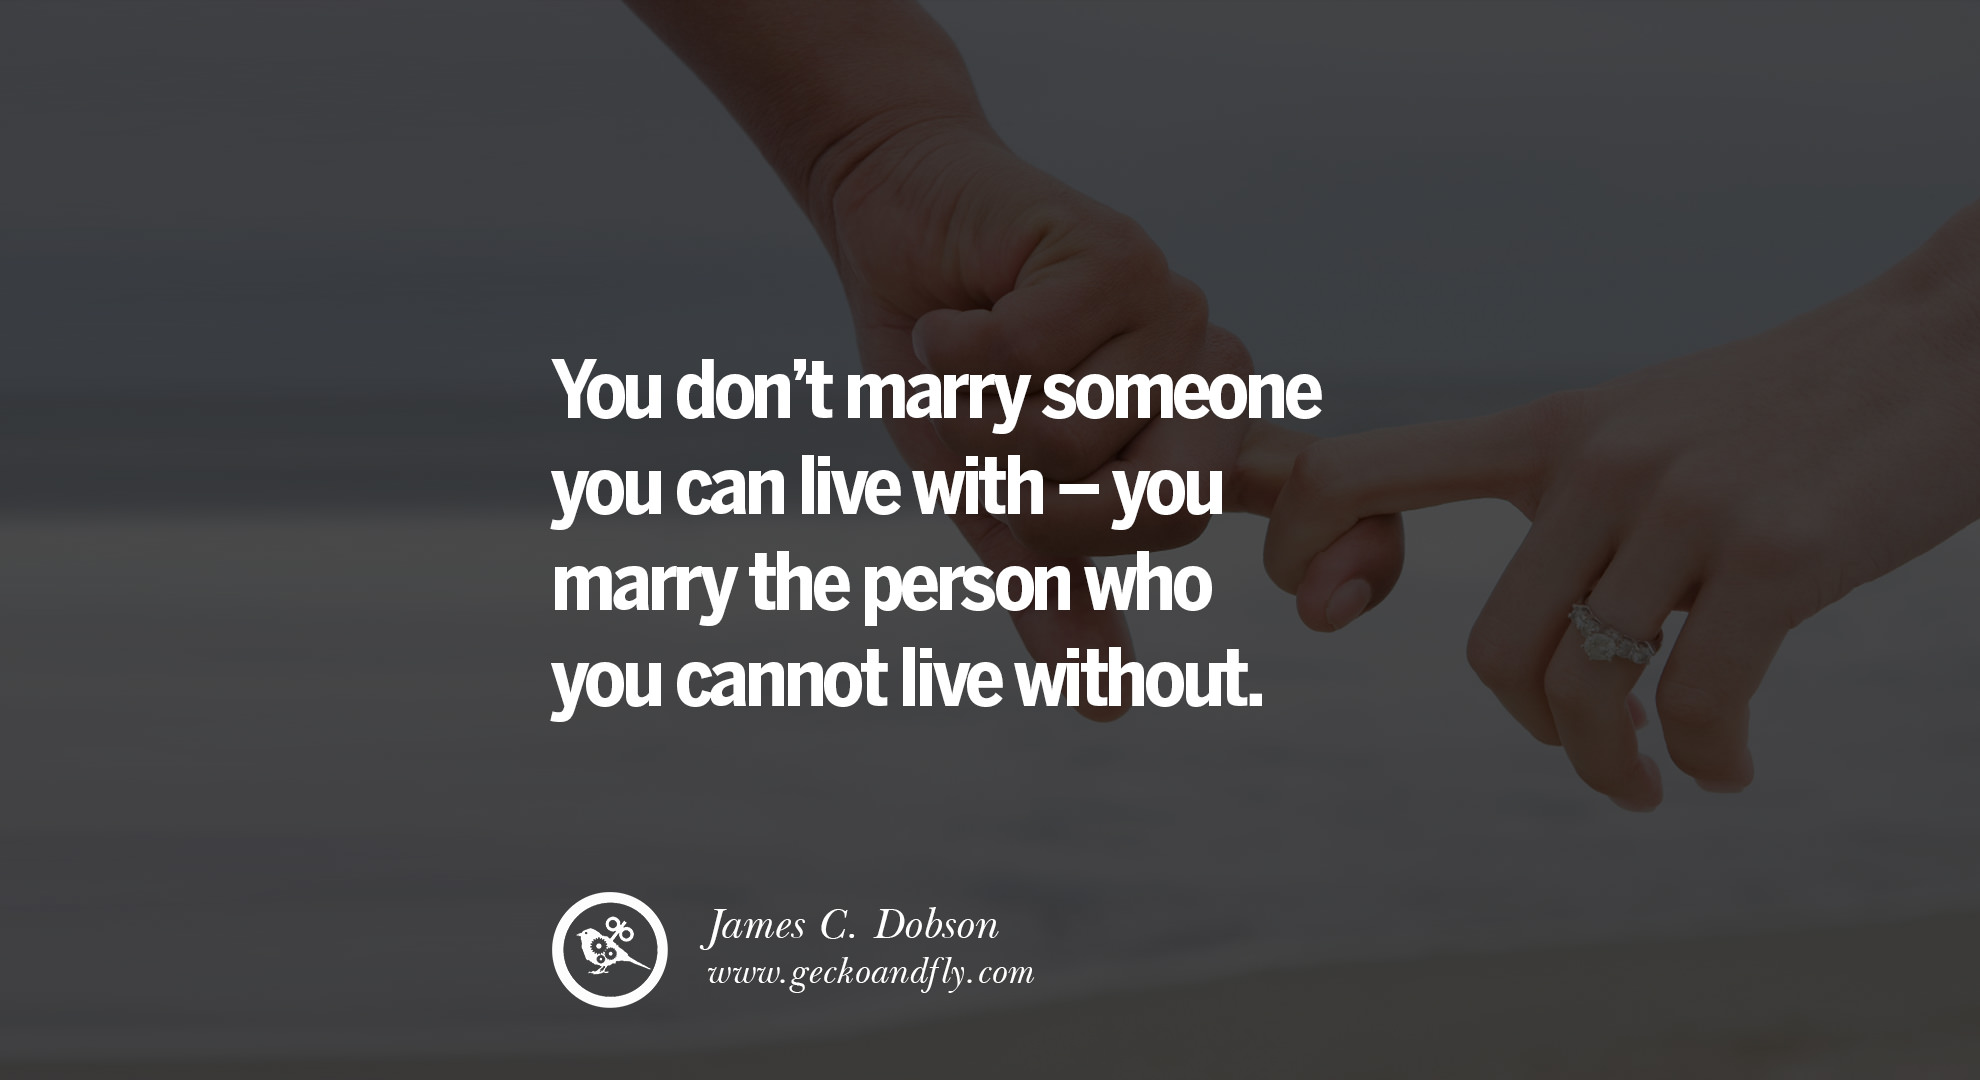 Love Marriage Quotes 40 Romantic Quotes About Love Life Marriage And Relationships